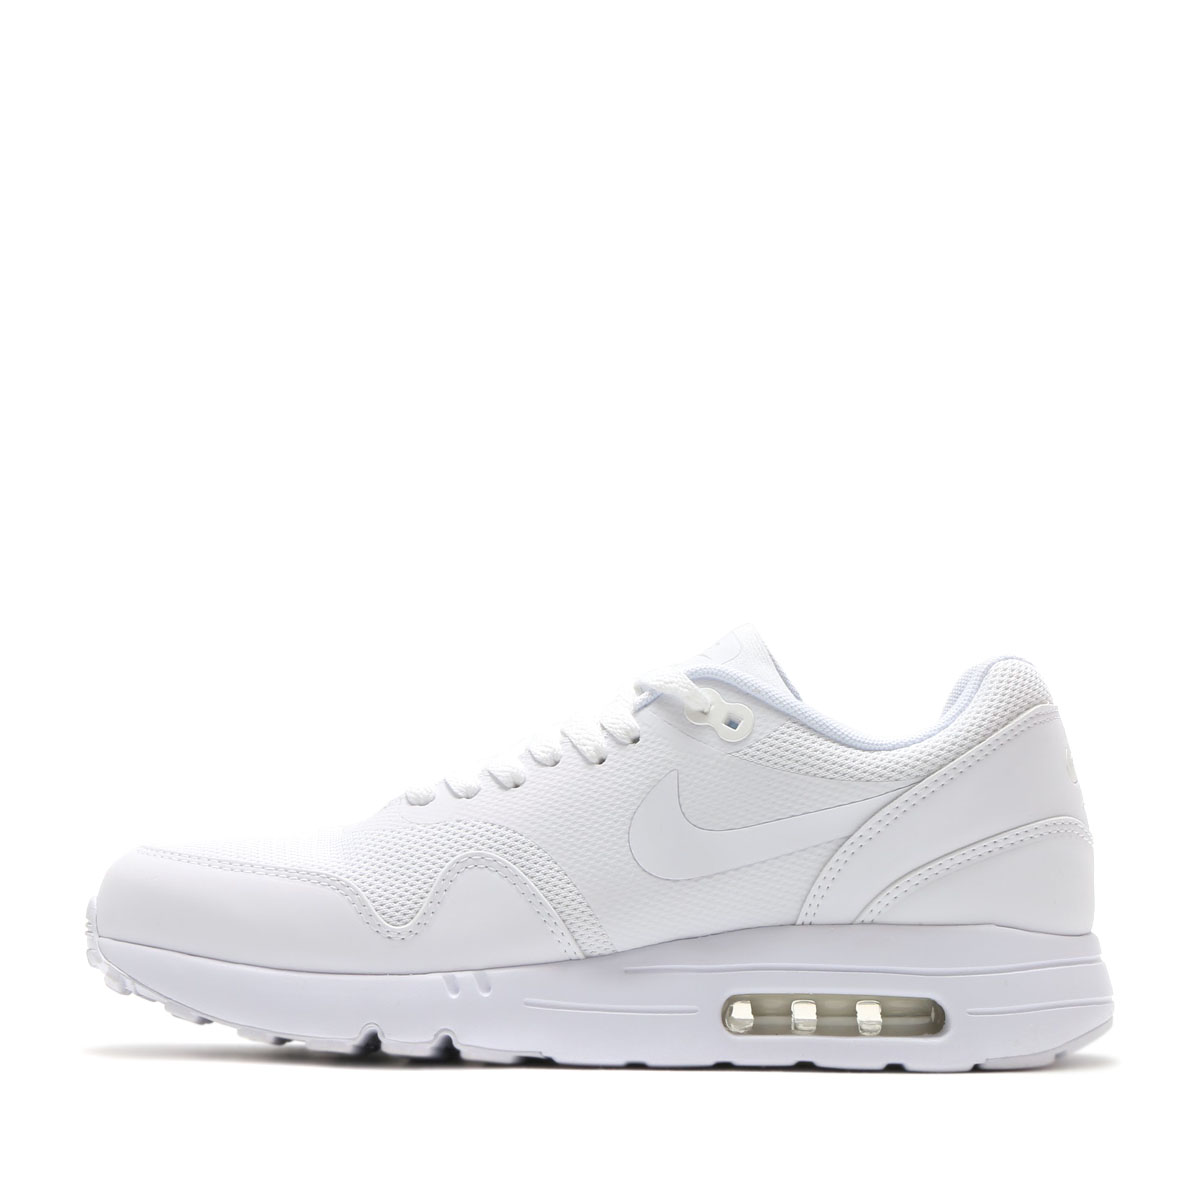 Men's Athletic Shoes 875679 101 Nike Air Max 1 Ultra 2.0